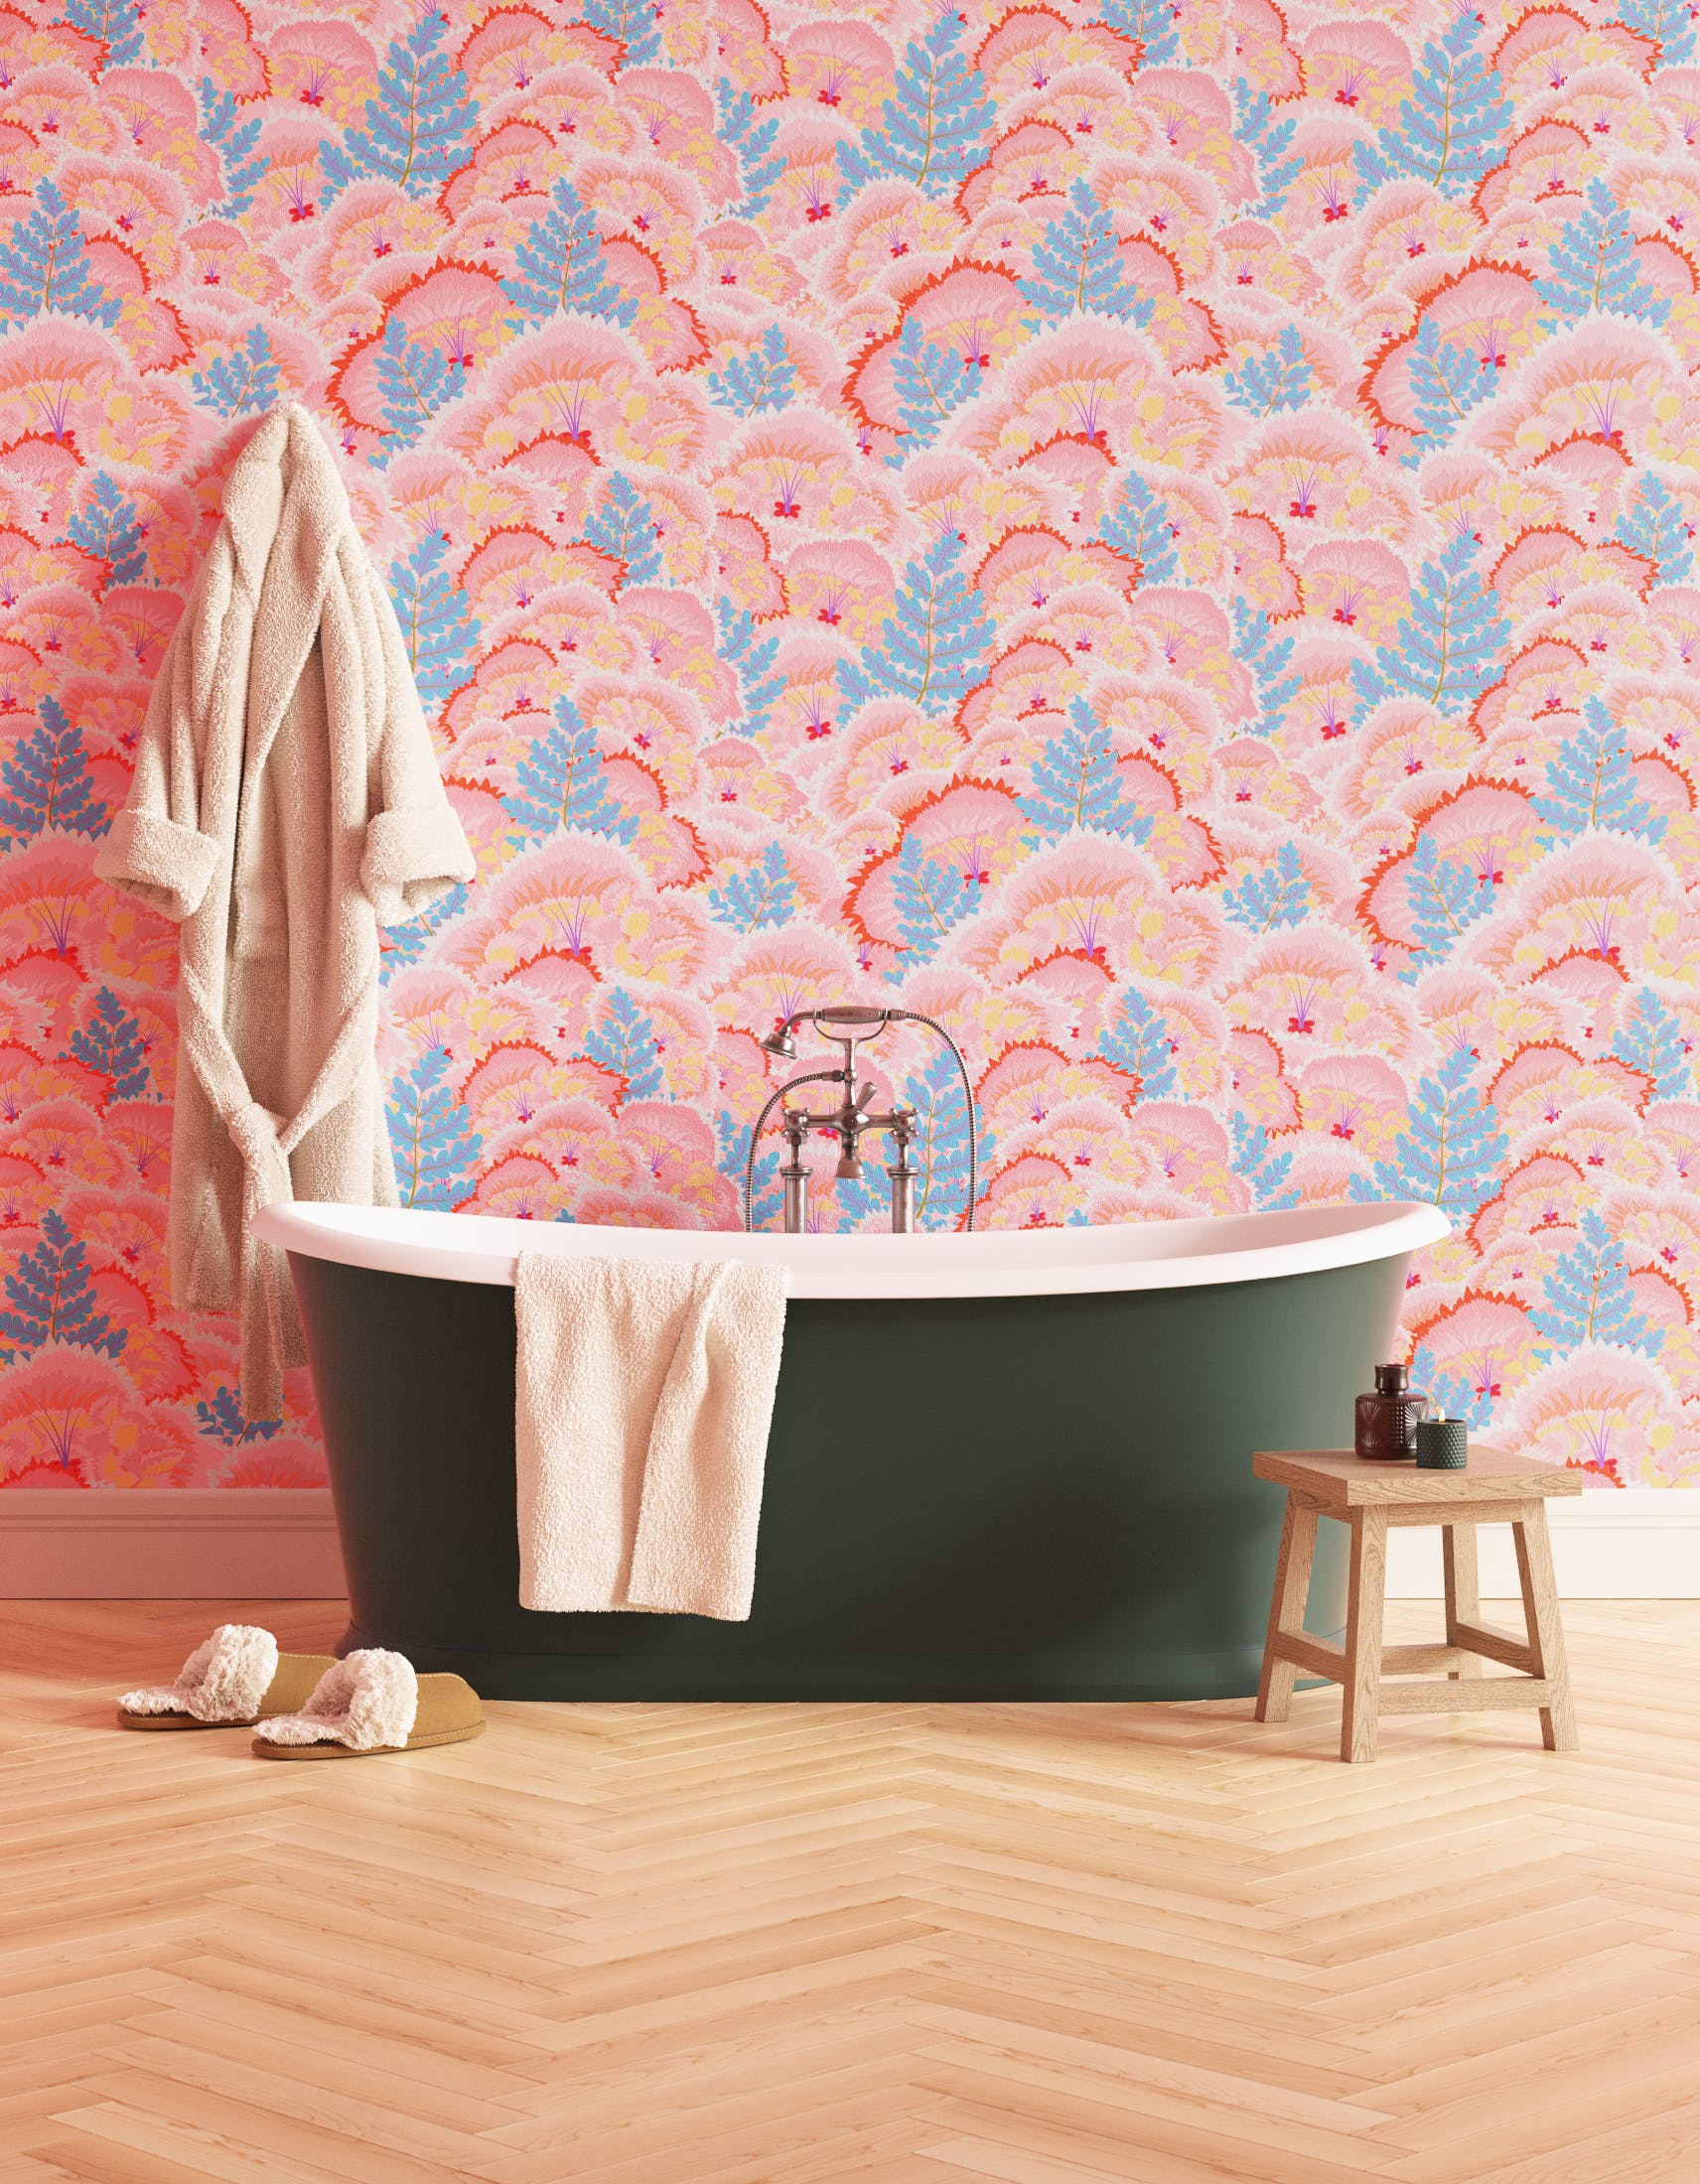 Bathroom decorated with Lick Electric Poppies 01, a pink floral wallpaper